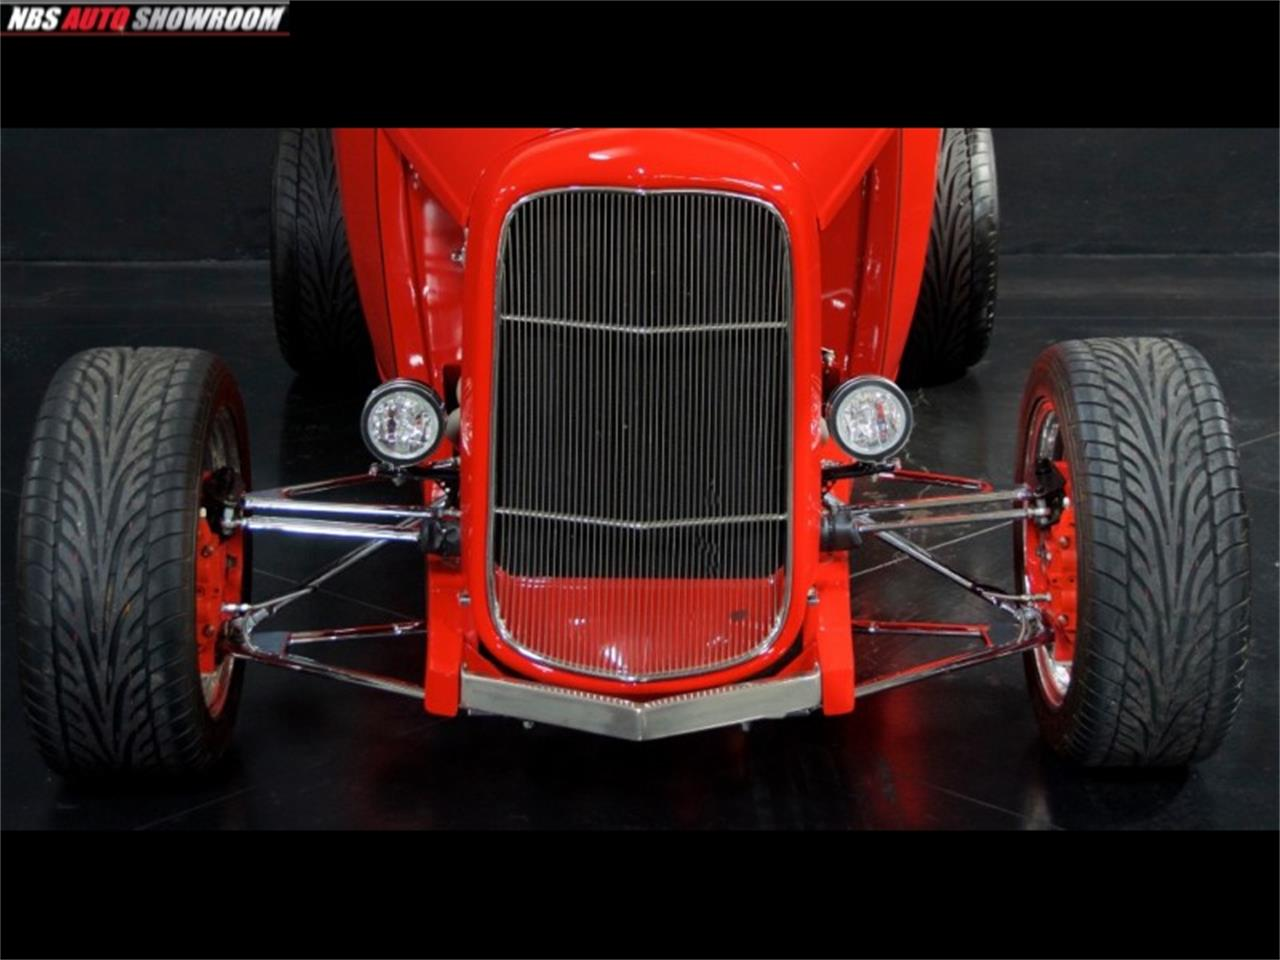 Large Picture of '32 Roadster located in Milpitas California Offered by NBS Auto Showroom - QY4R